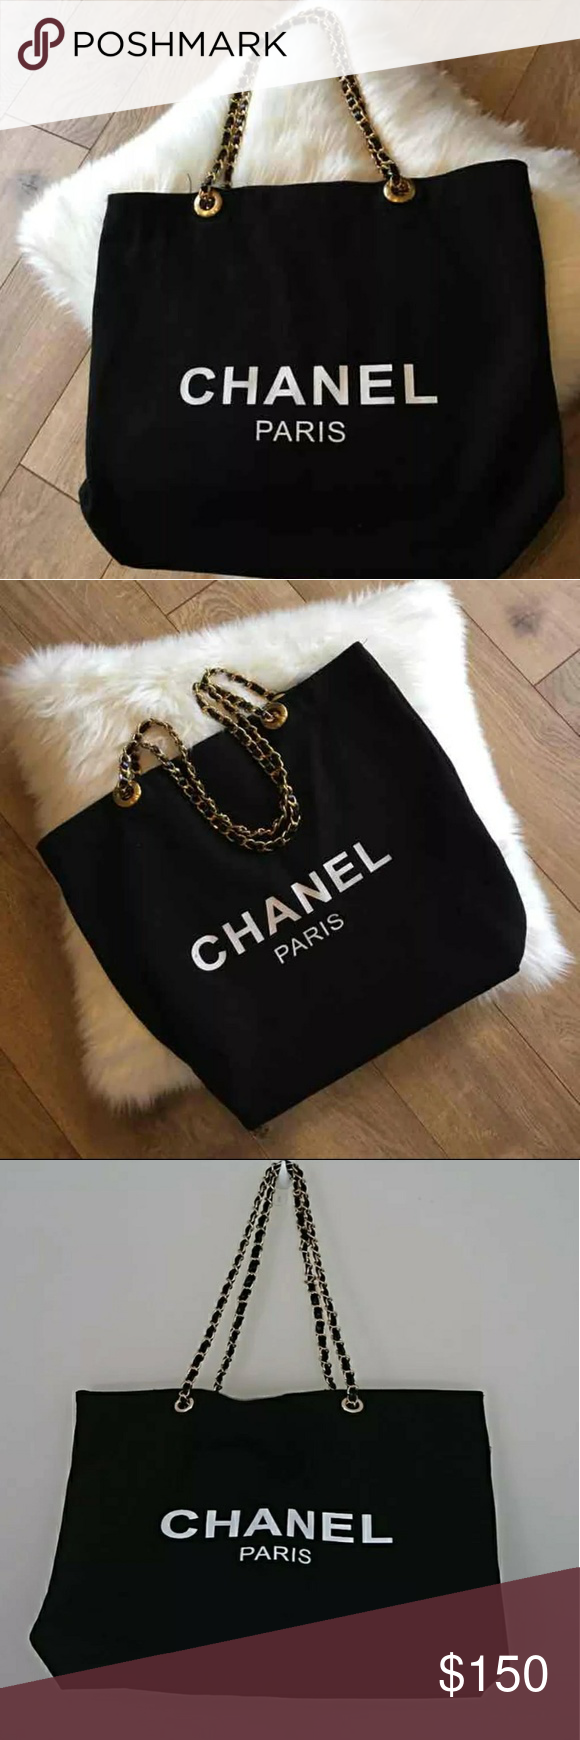 df976a9cac610f SALE New Chanel VIP Canvas bag CHANEL VIP Black canvas Tote Bag Shopping  Travel Shopper Leather(Faux Leather) Chain(Gold-Color Chain) Brand New with  ...